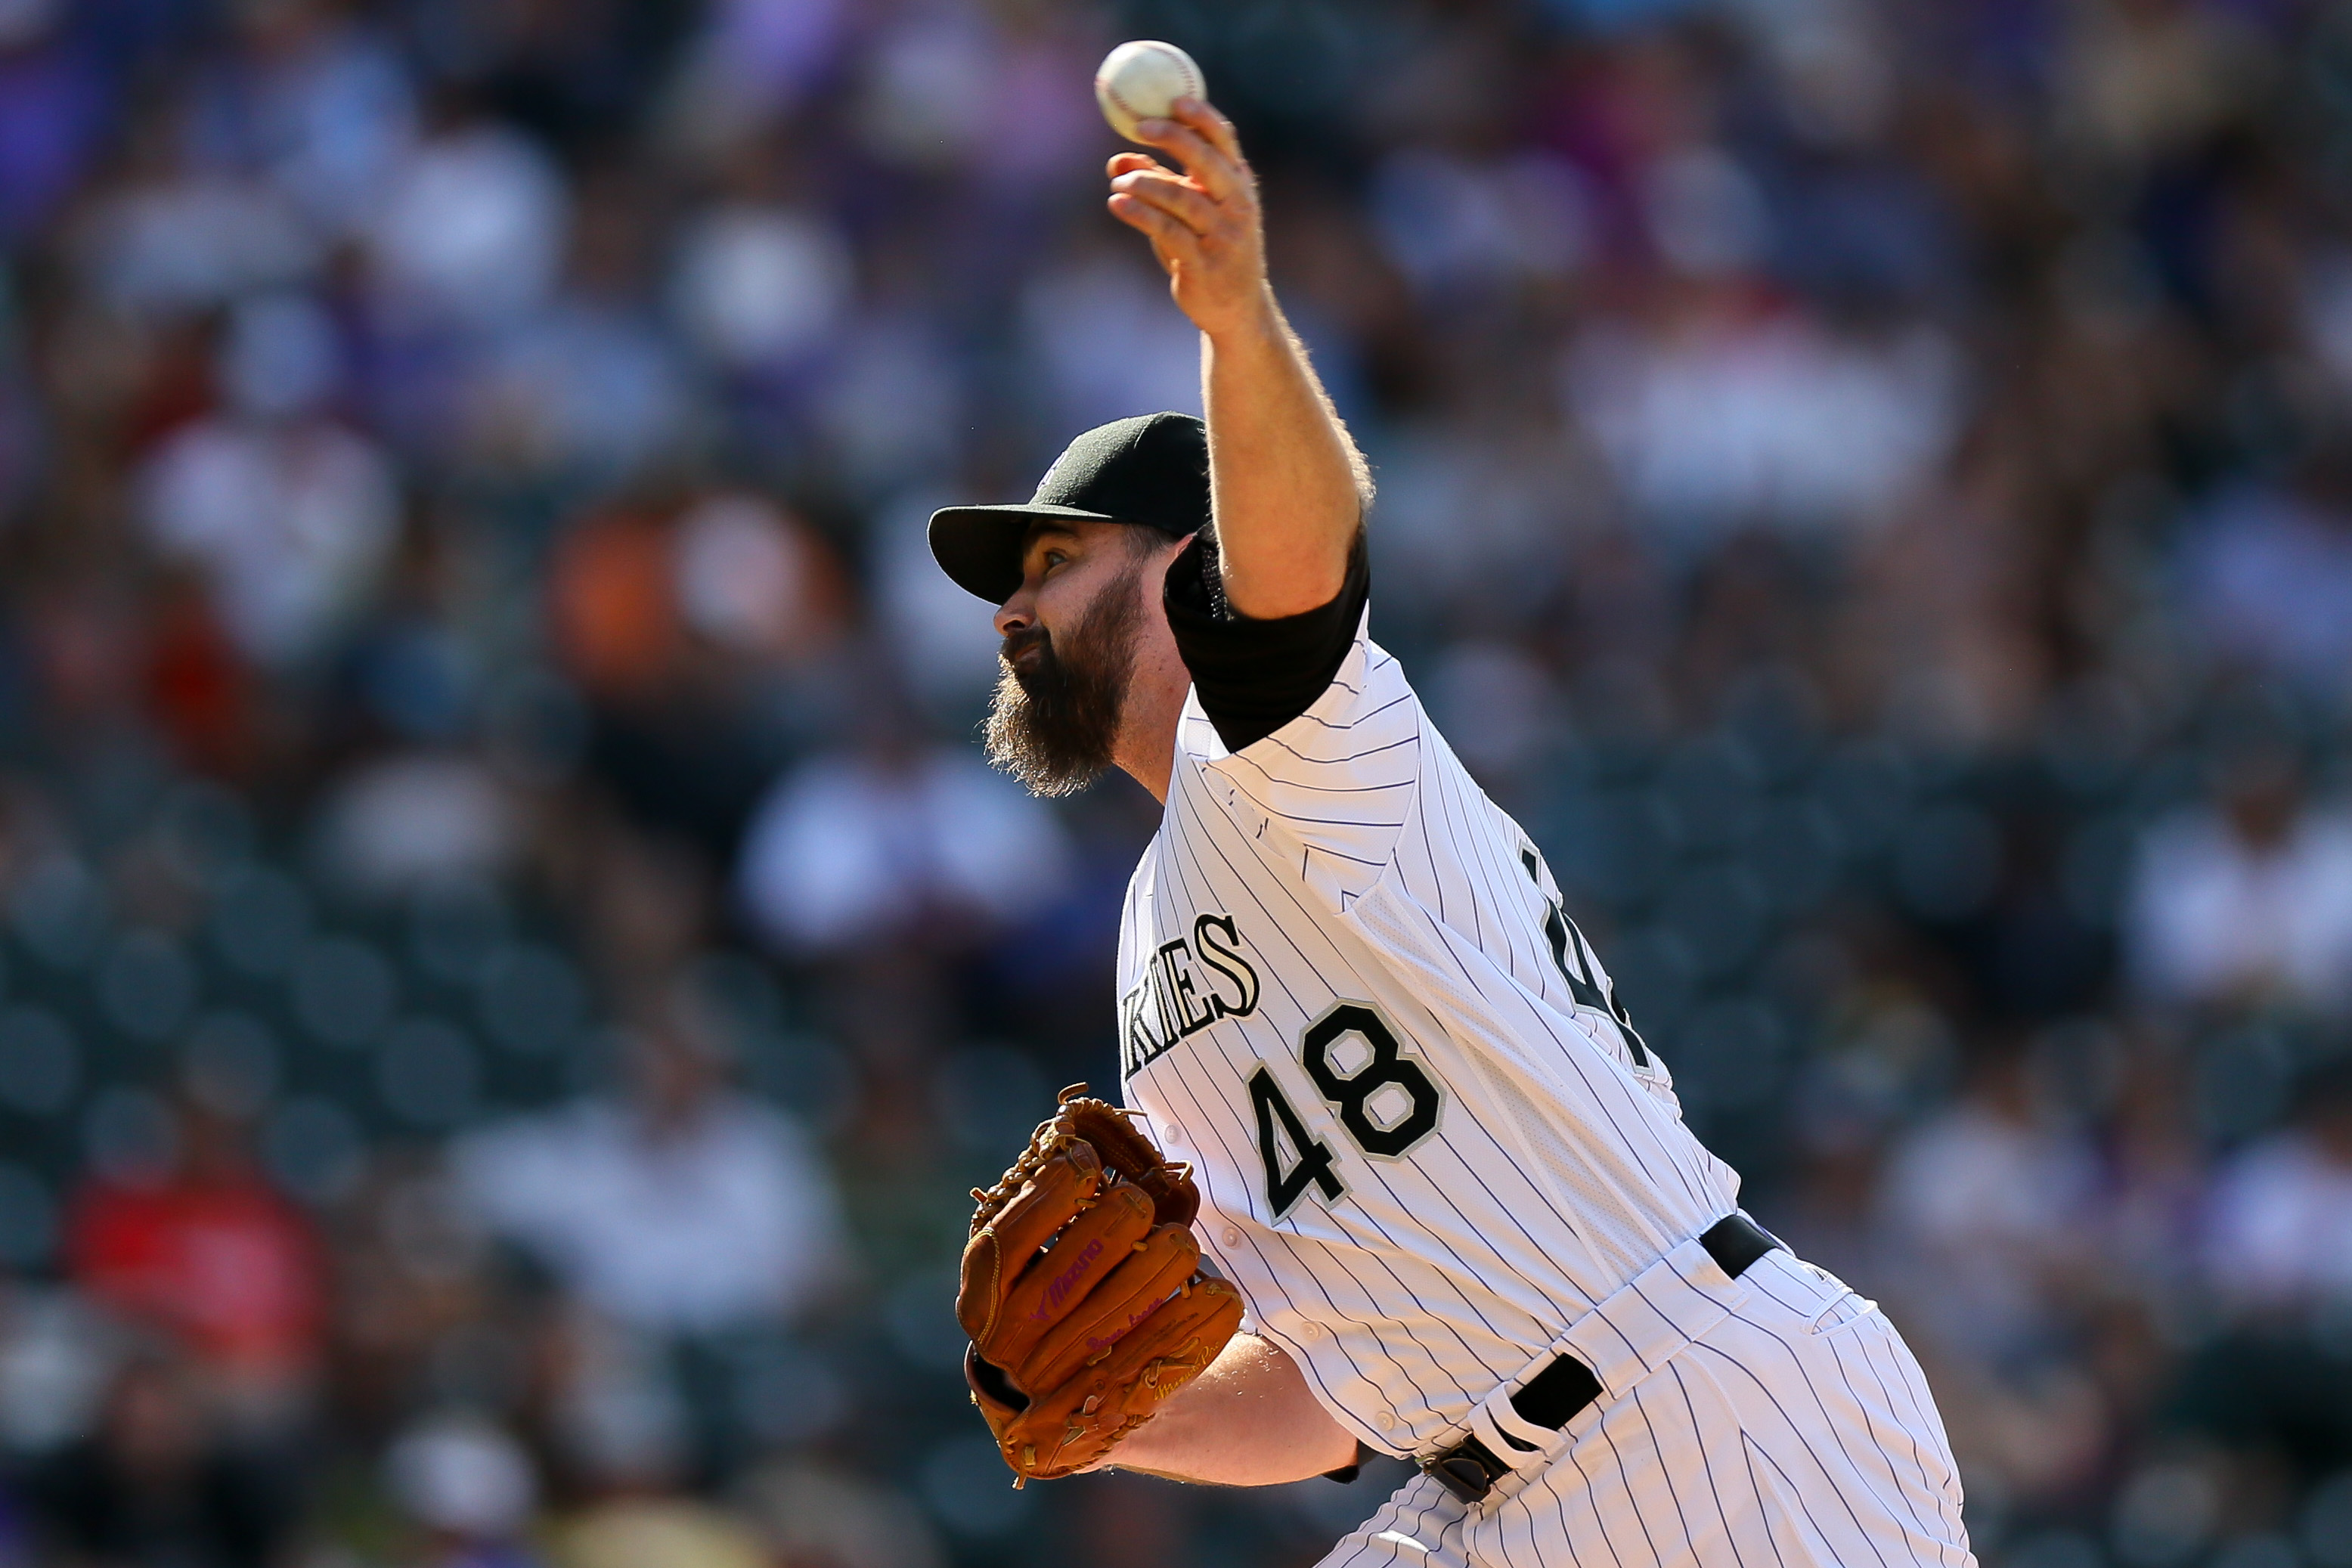 Relief pitcher Boone Logan #48 of the Colorado Rockies delivers to home plate during the eighth inning against the Washington Nationals at Coors Field on August 17, 2016 in Denver, Colorado. (Photo by Justin Edmonds/Getty Images)